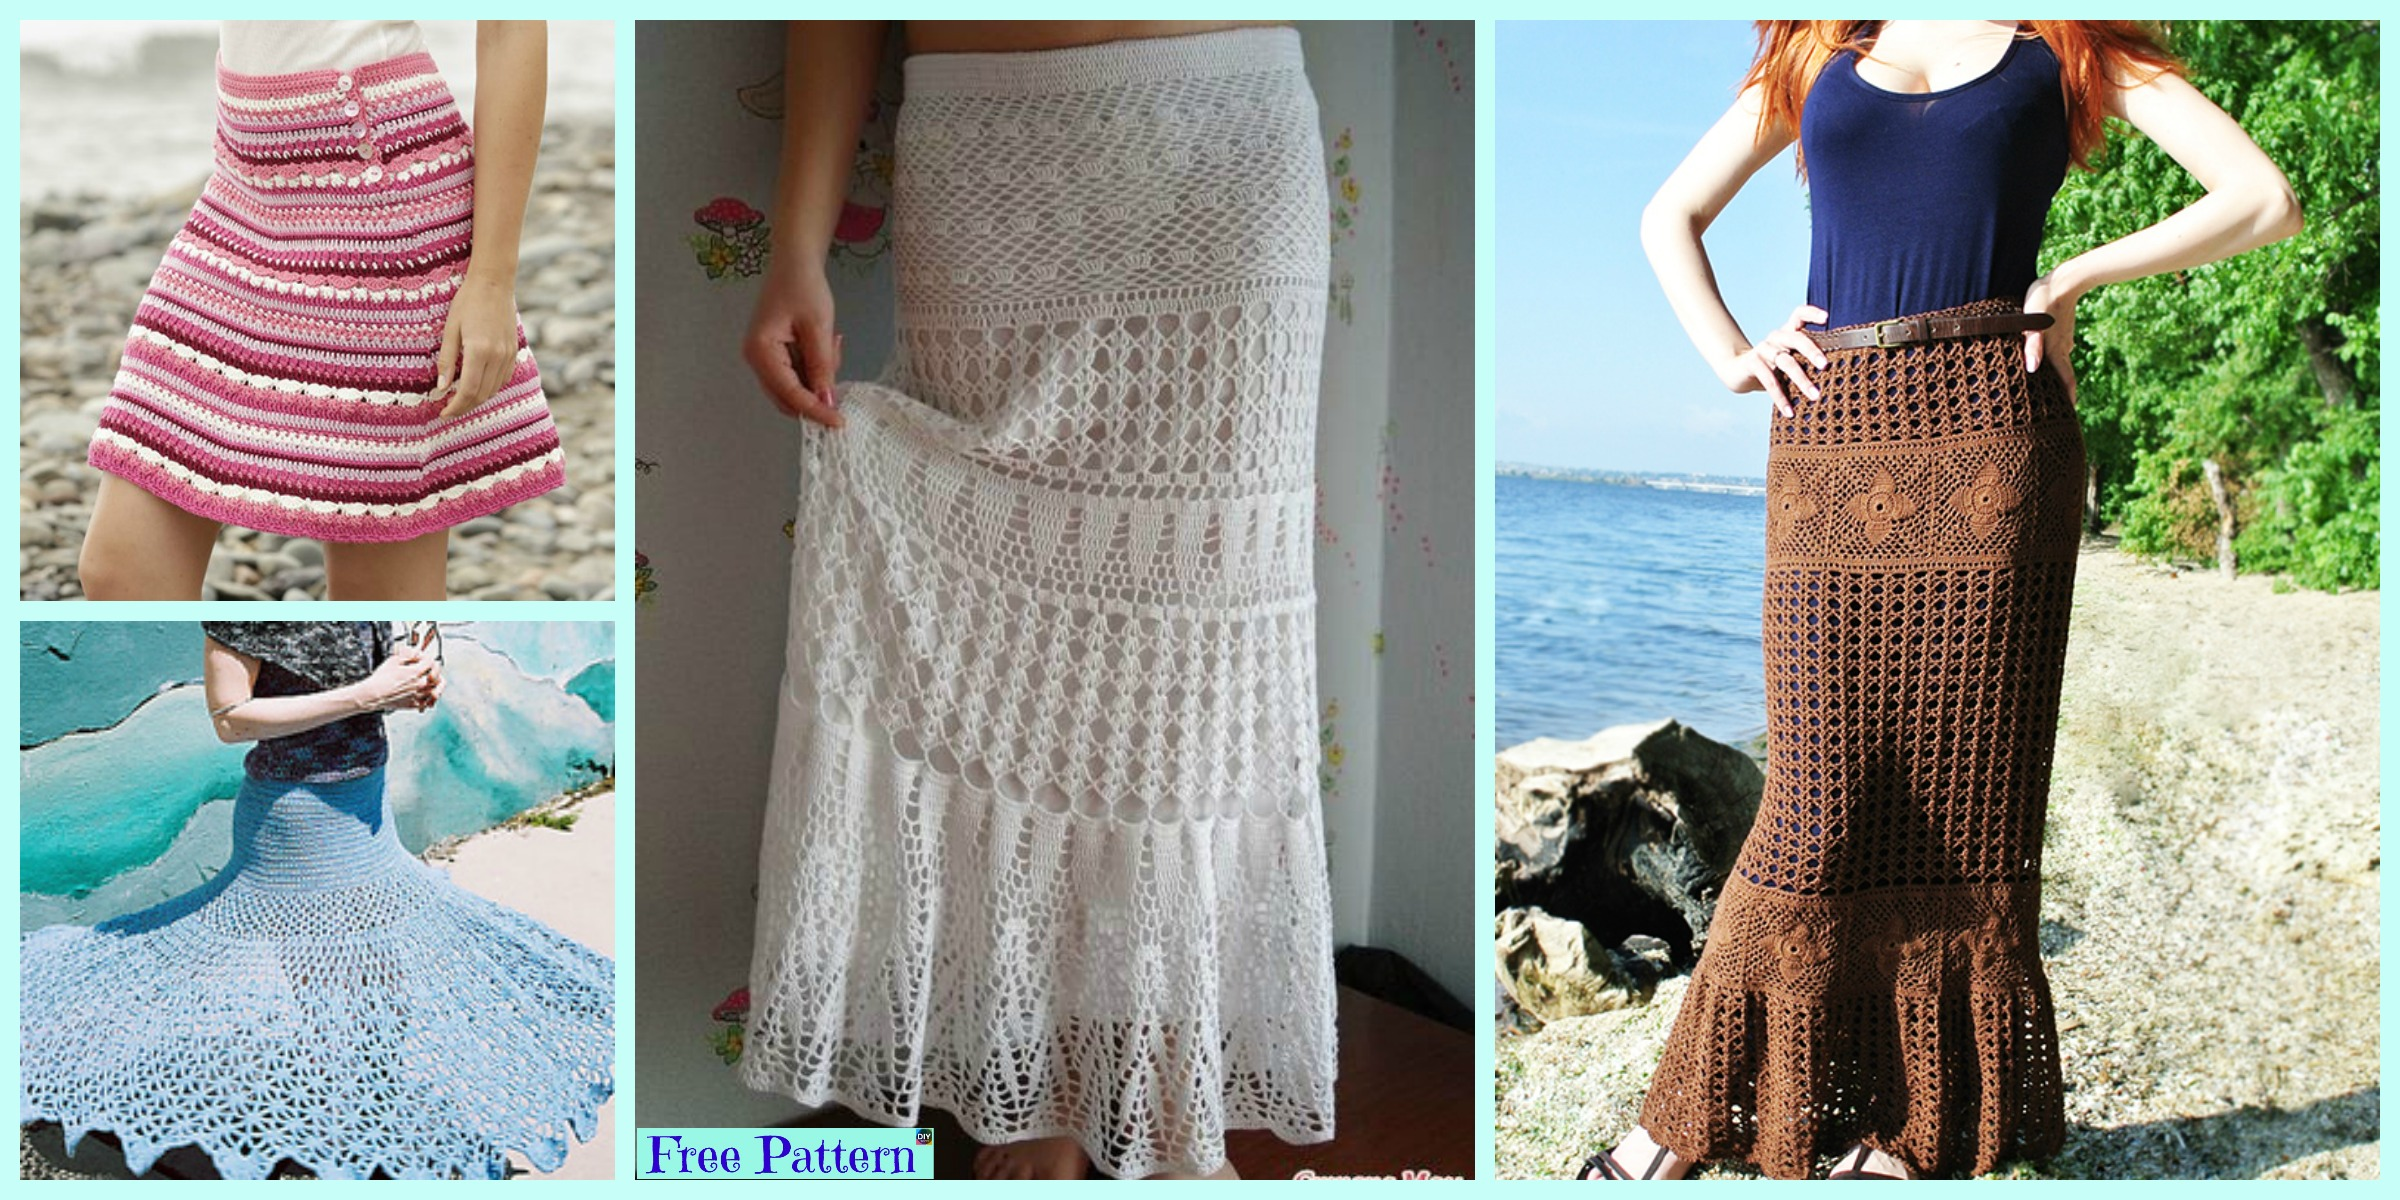 8 Beautiful Crochet Summer Skirt Free Patterns